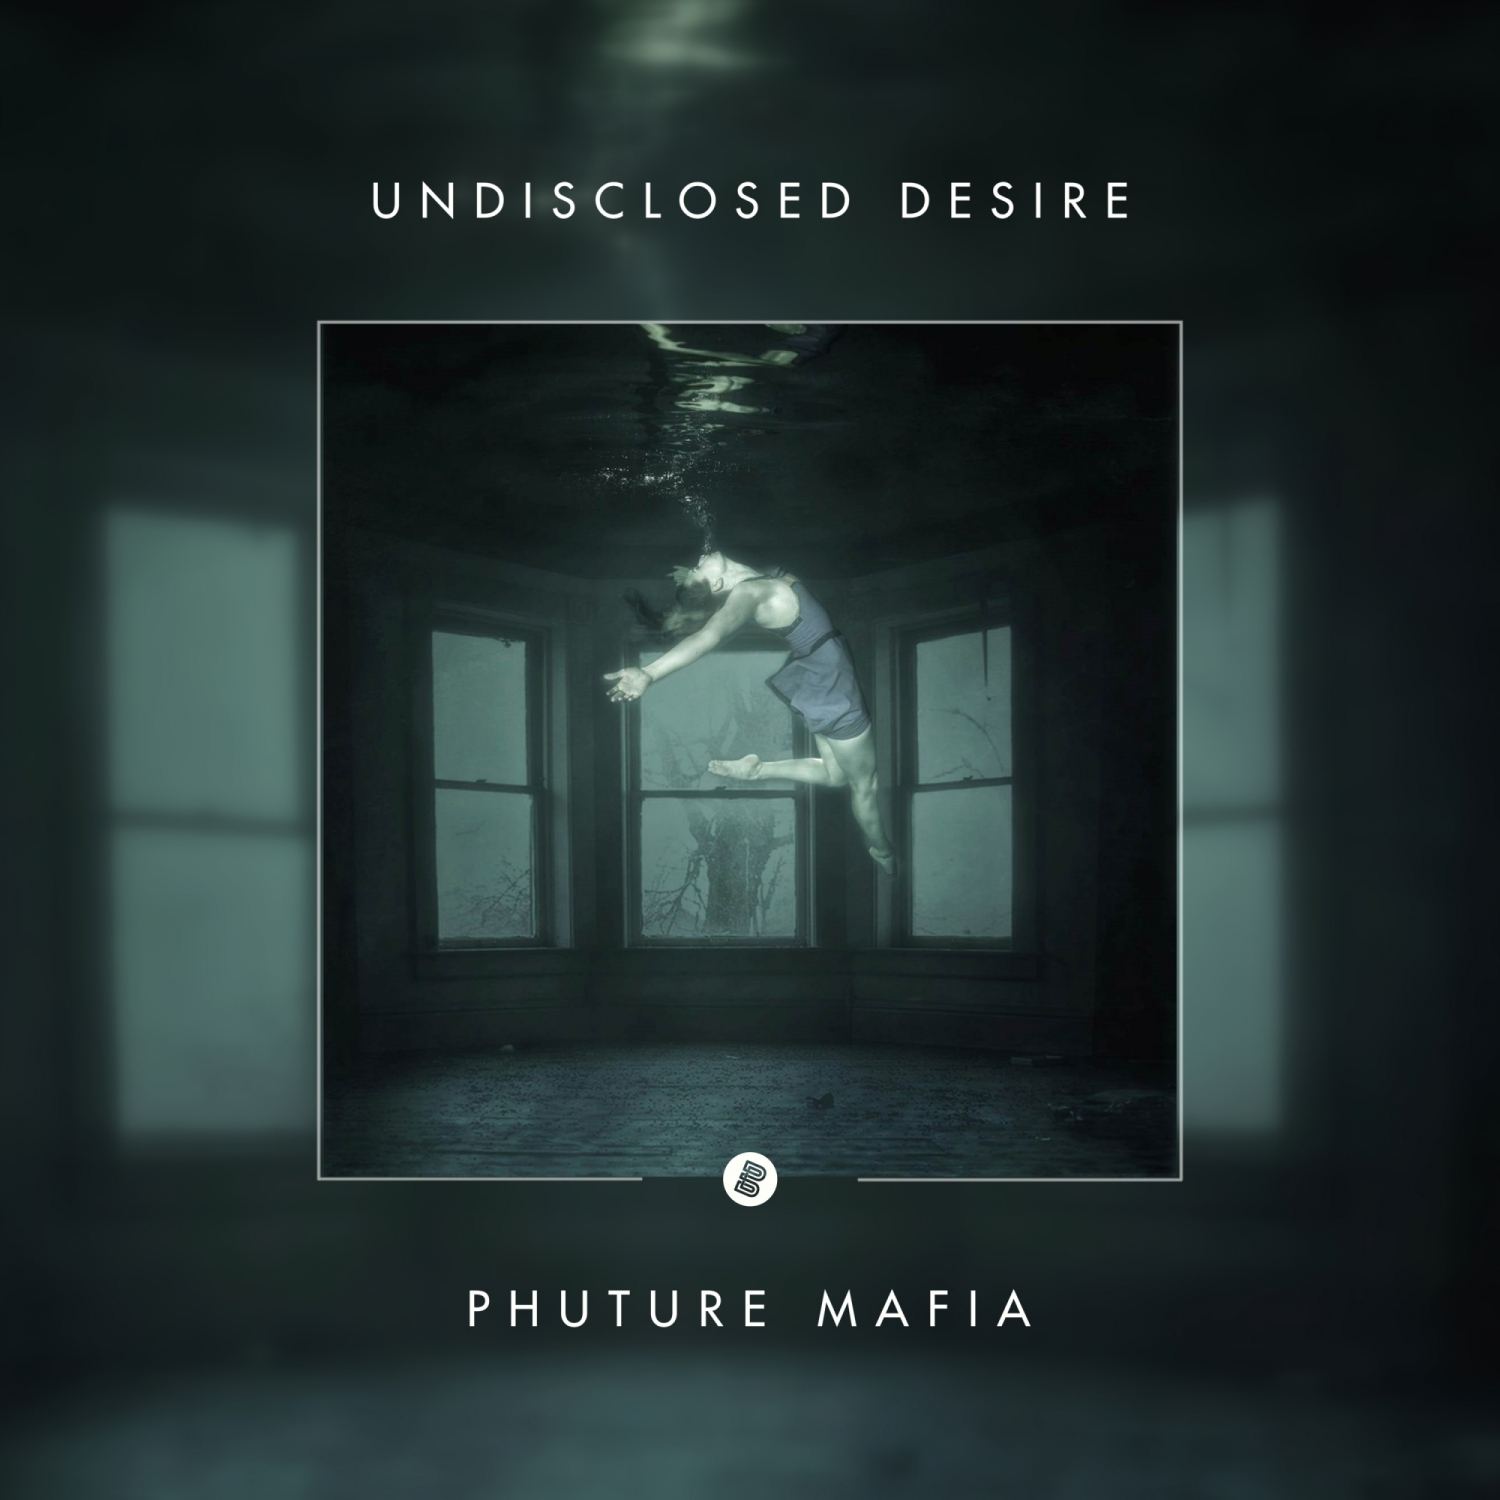 Phuture Mafia - Undisclosed Desire  (Original Mix)